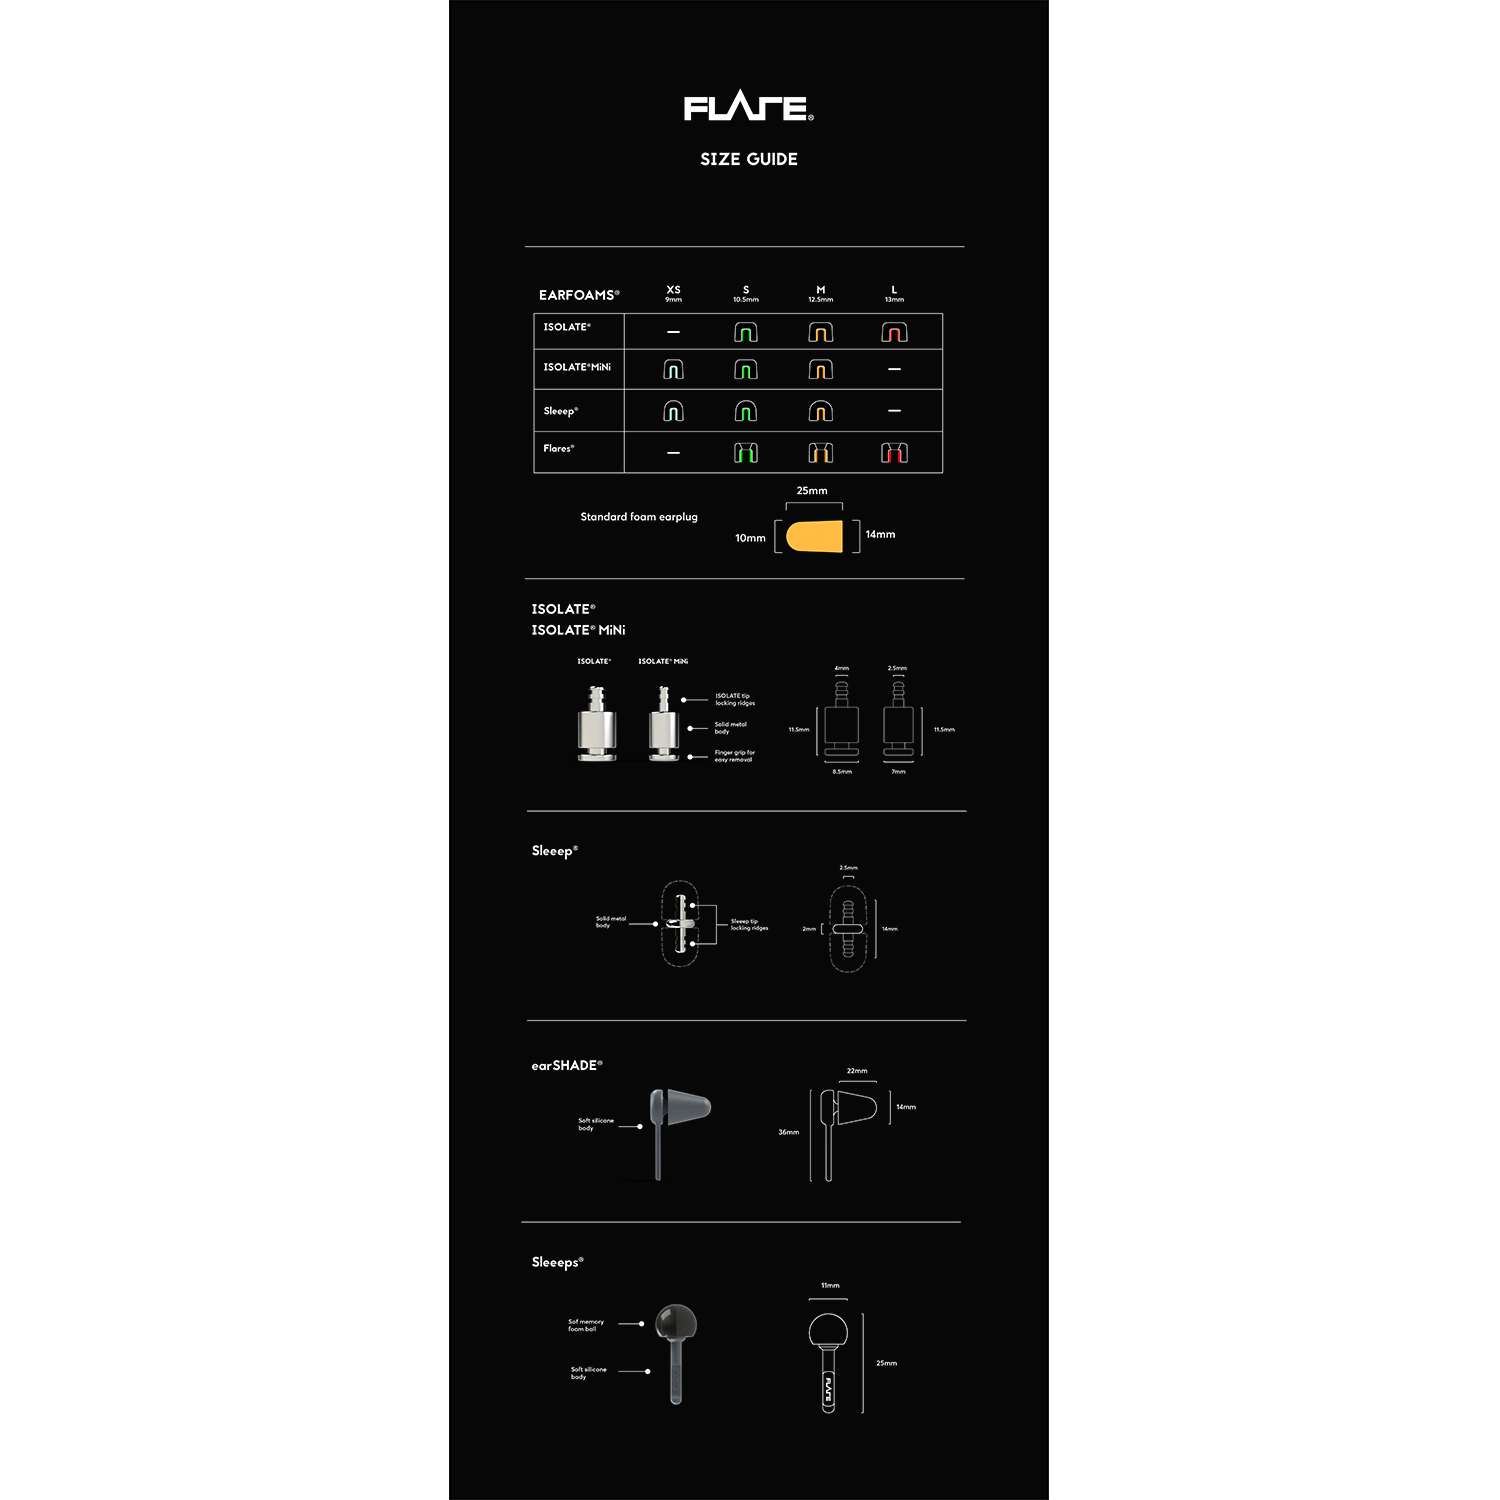 Flare size guide